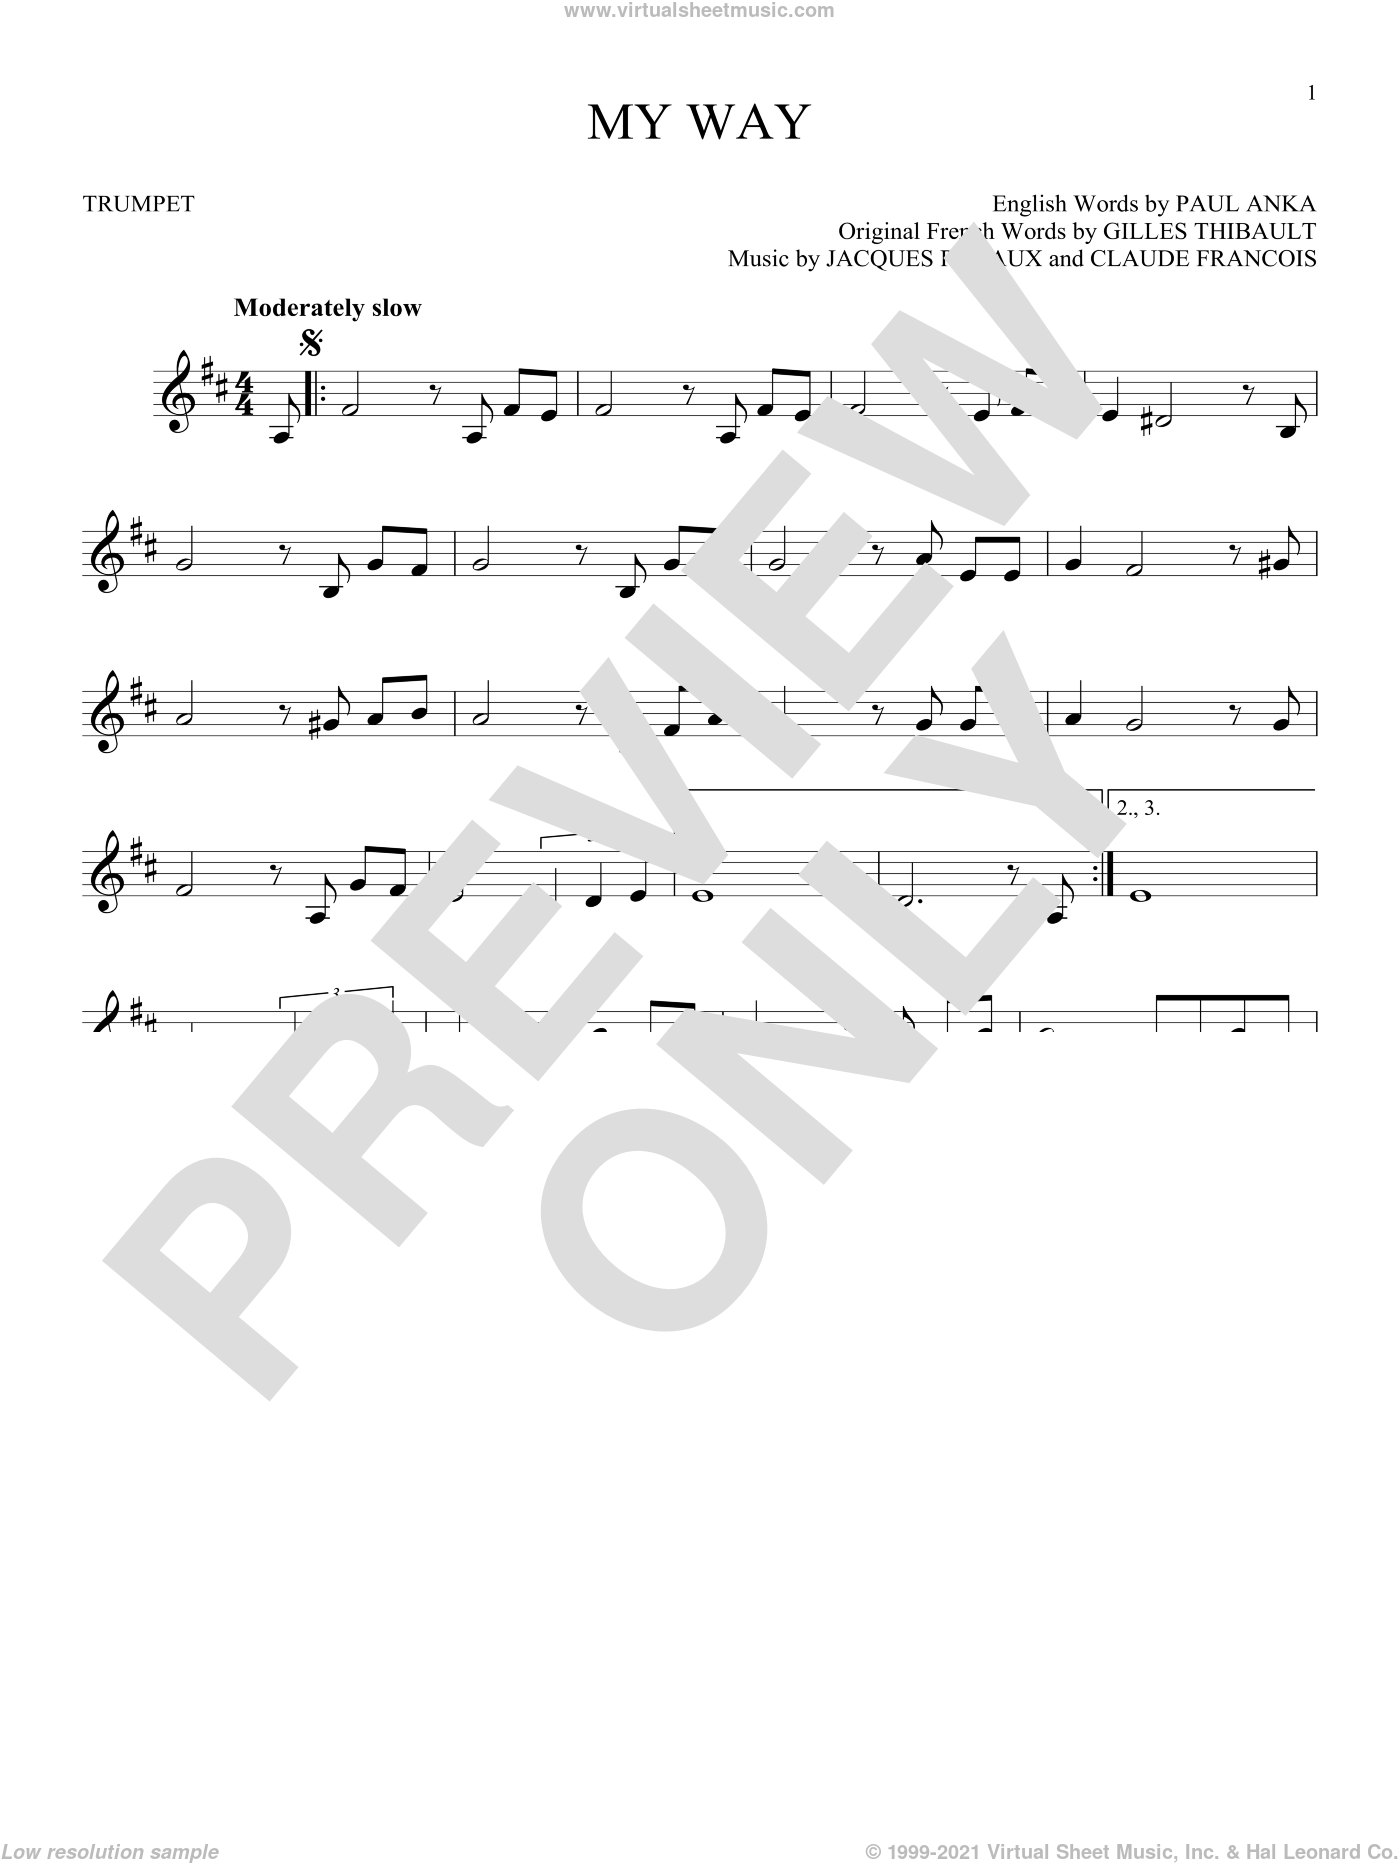 My Way sheet music for trumpet solo by Frank Sinatra, Elvis Presley, Claude Francois, Gilles Thibault, Jacques Revaux and Paul Anka, intermediate skill level